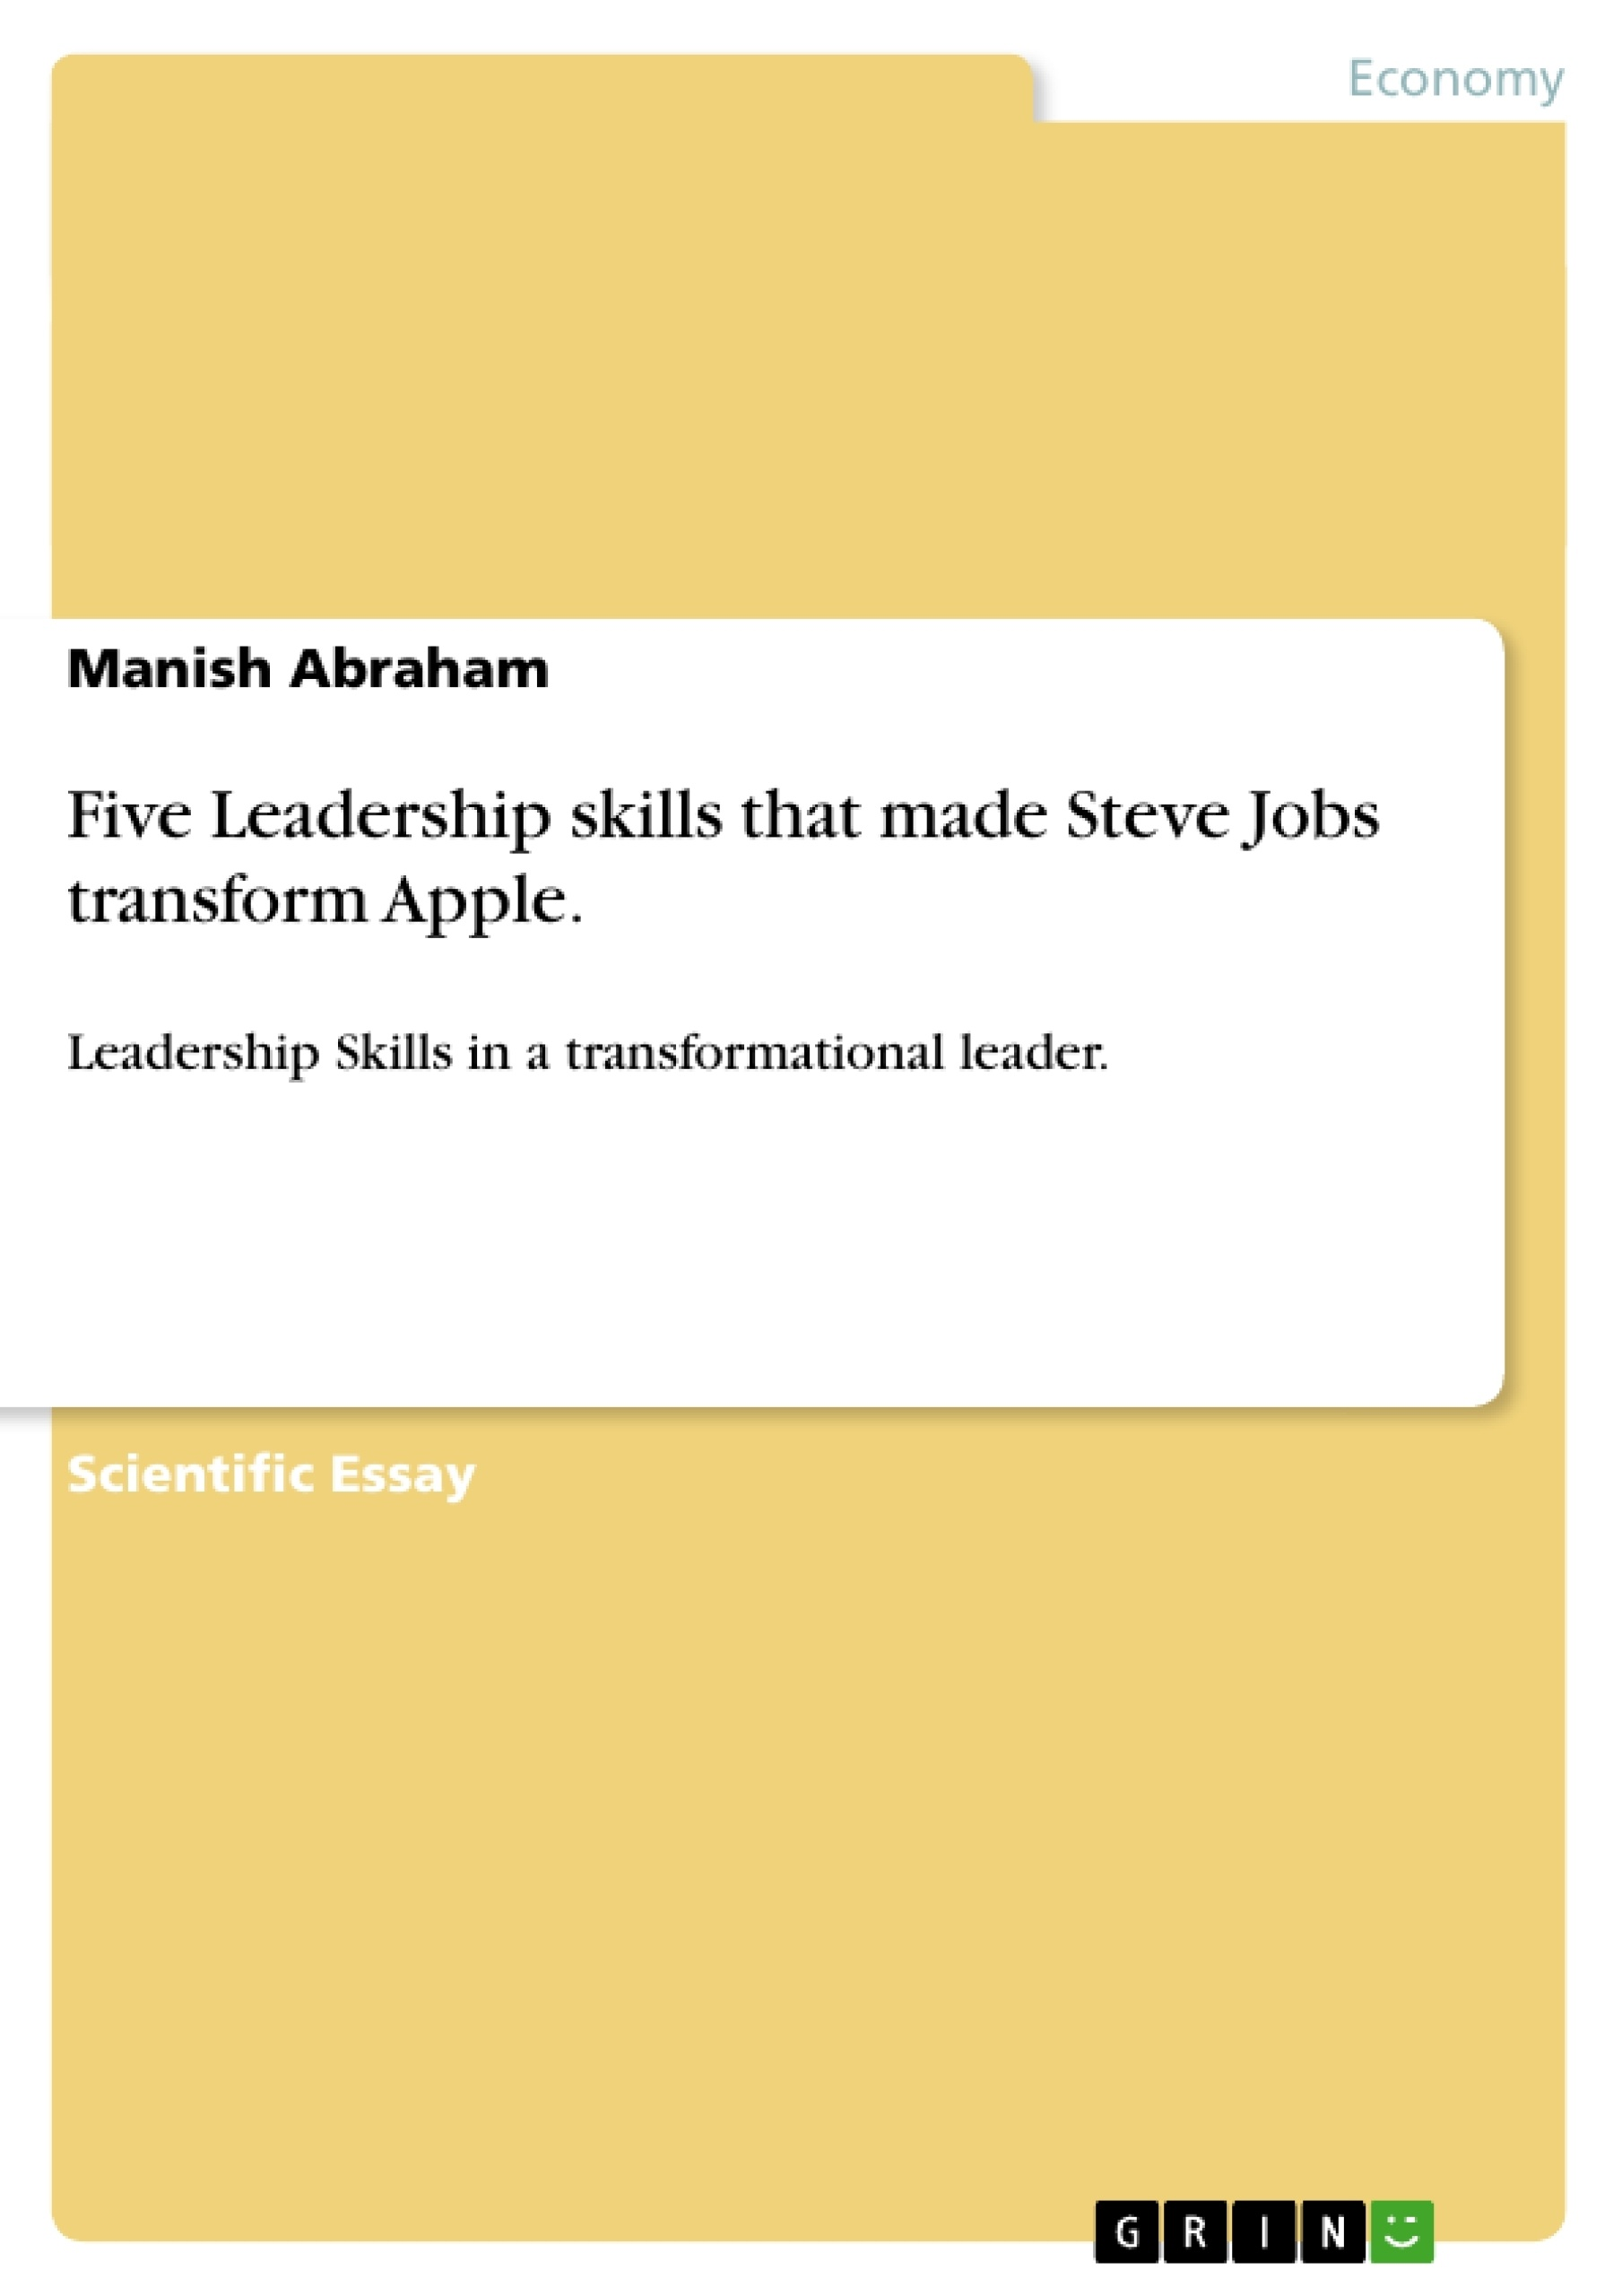 essay on leadership skills five leadership skills that made steve  five leadership skills that made steve jobs transform apple five leadership skills that made steve jobs